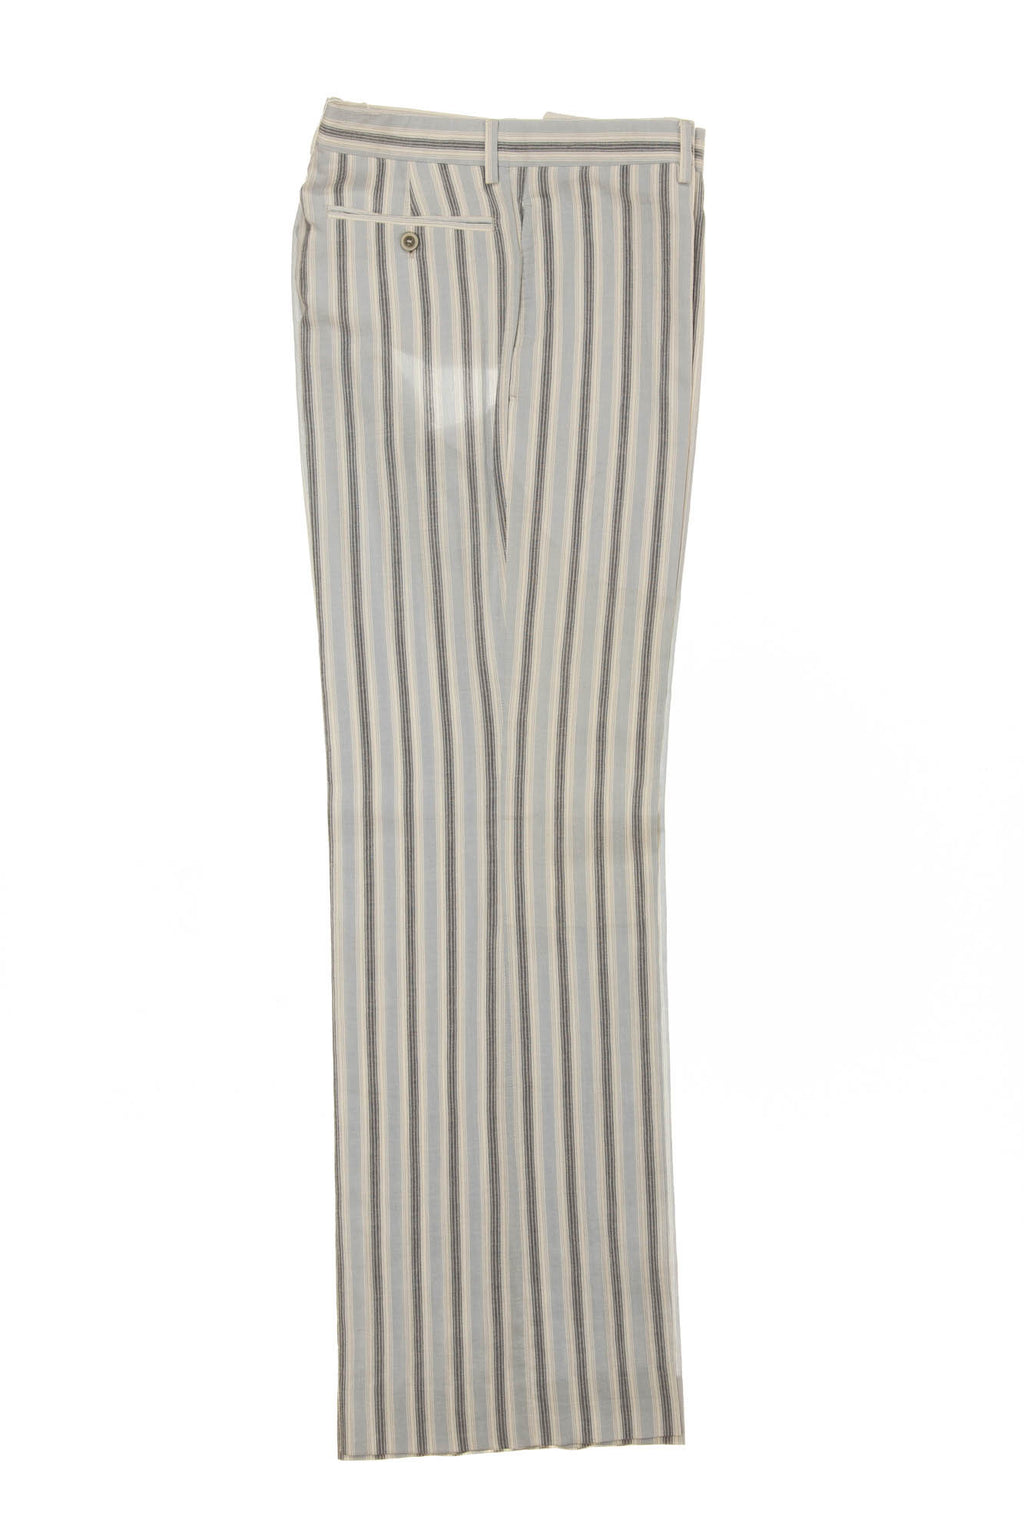 Hermes - White Linen Striped Pants - IT 52